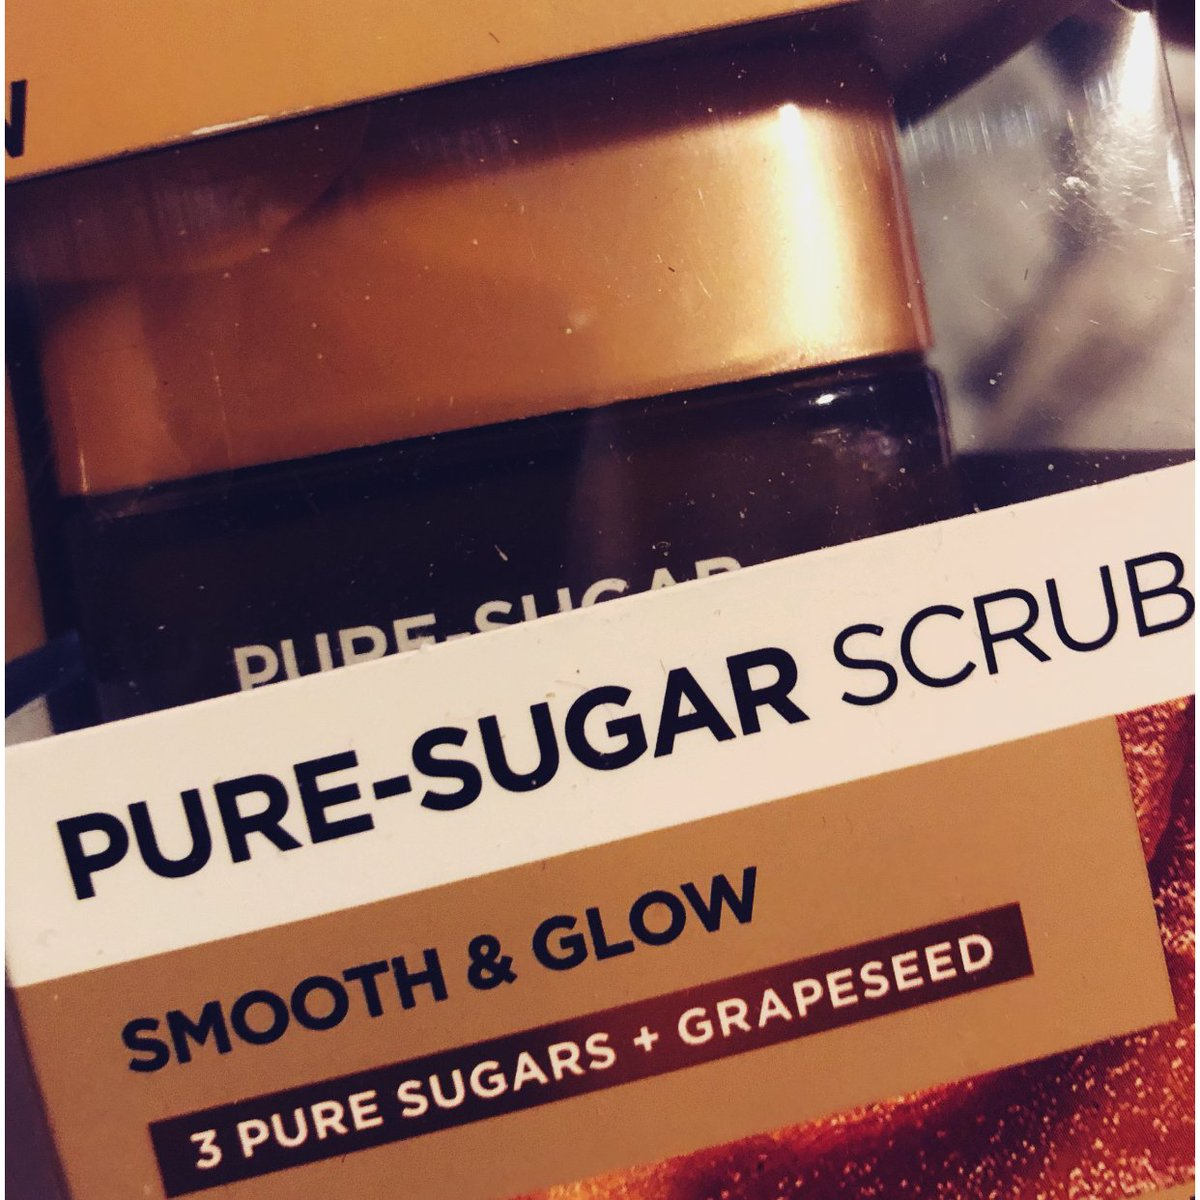 I LOVE L'Oreal Pure Sugar Scrub!!! It exfoliates to soft smooth looking skin. It smells incredible as well. #loreal #puresugarscrub